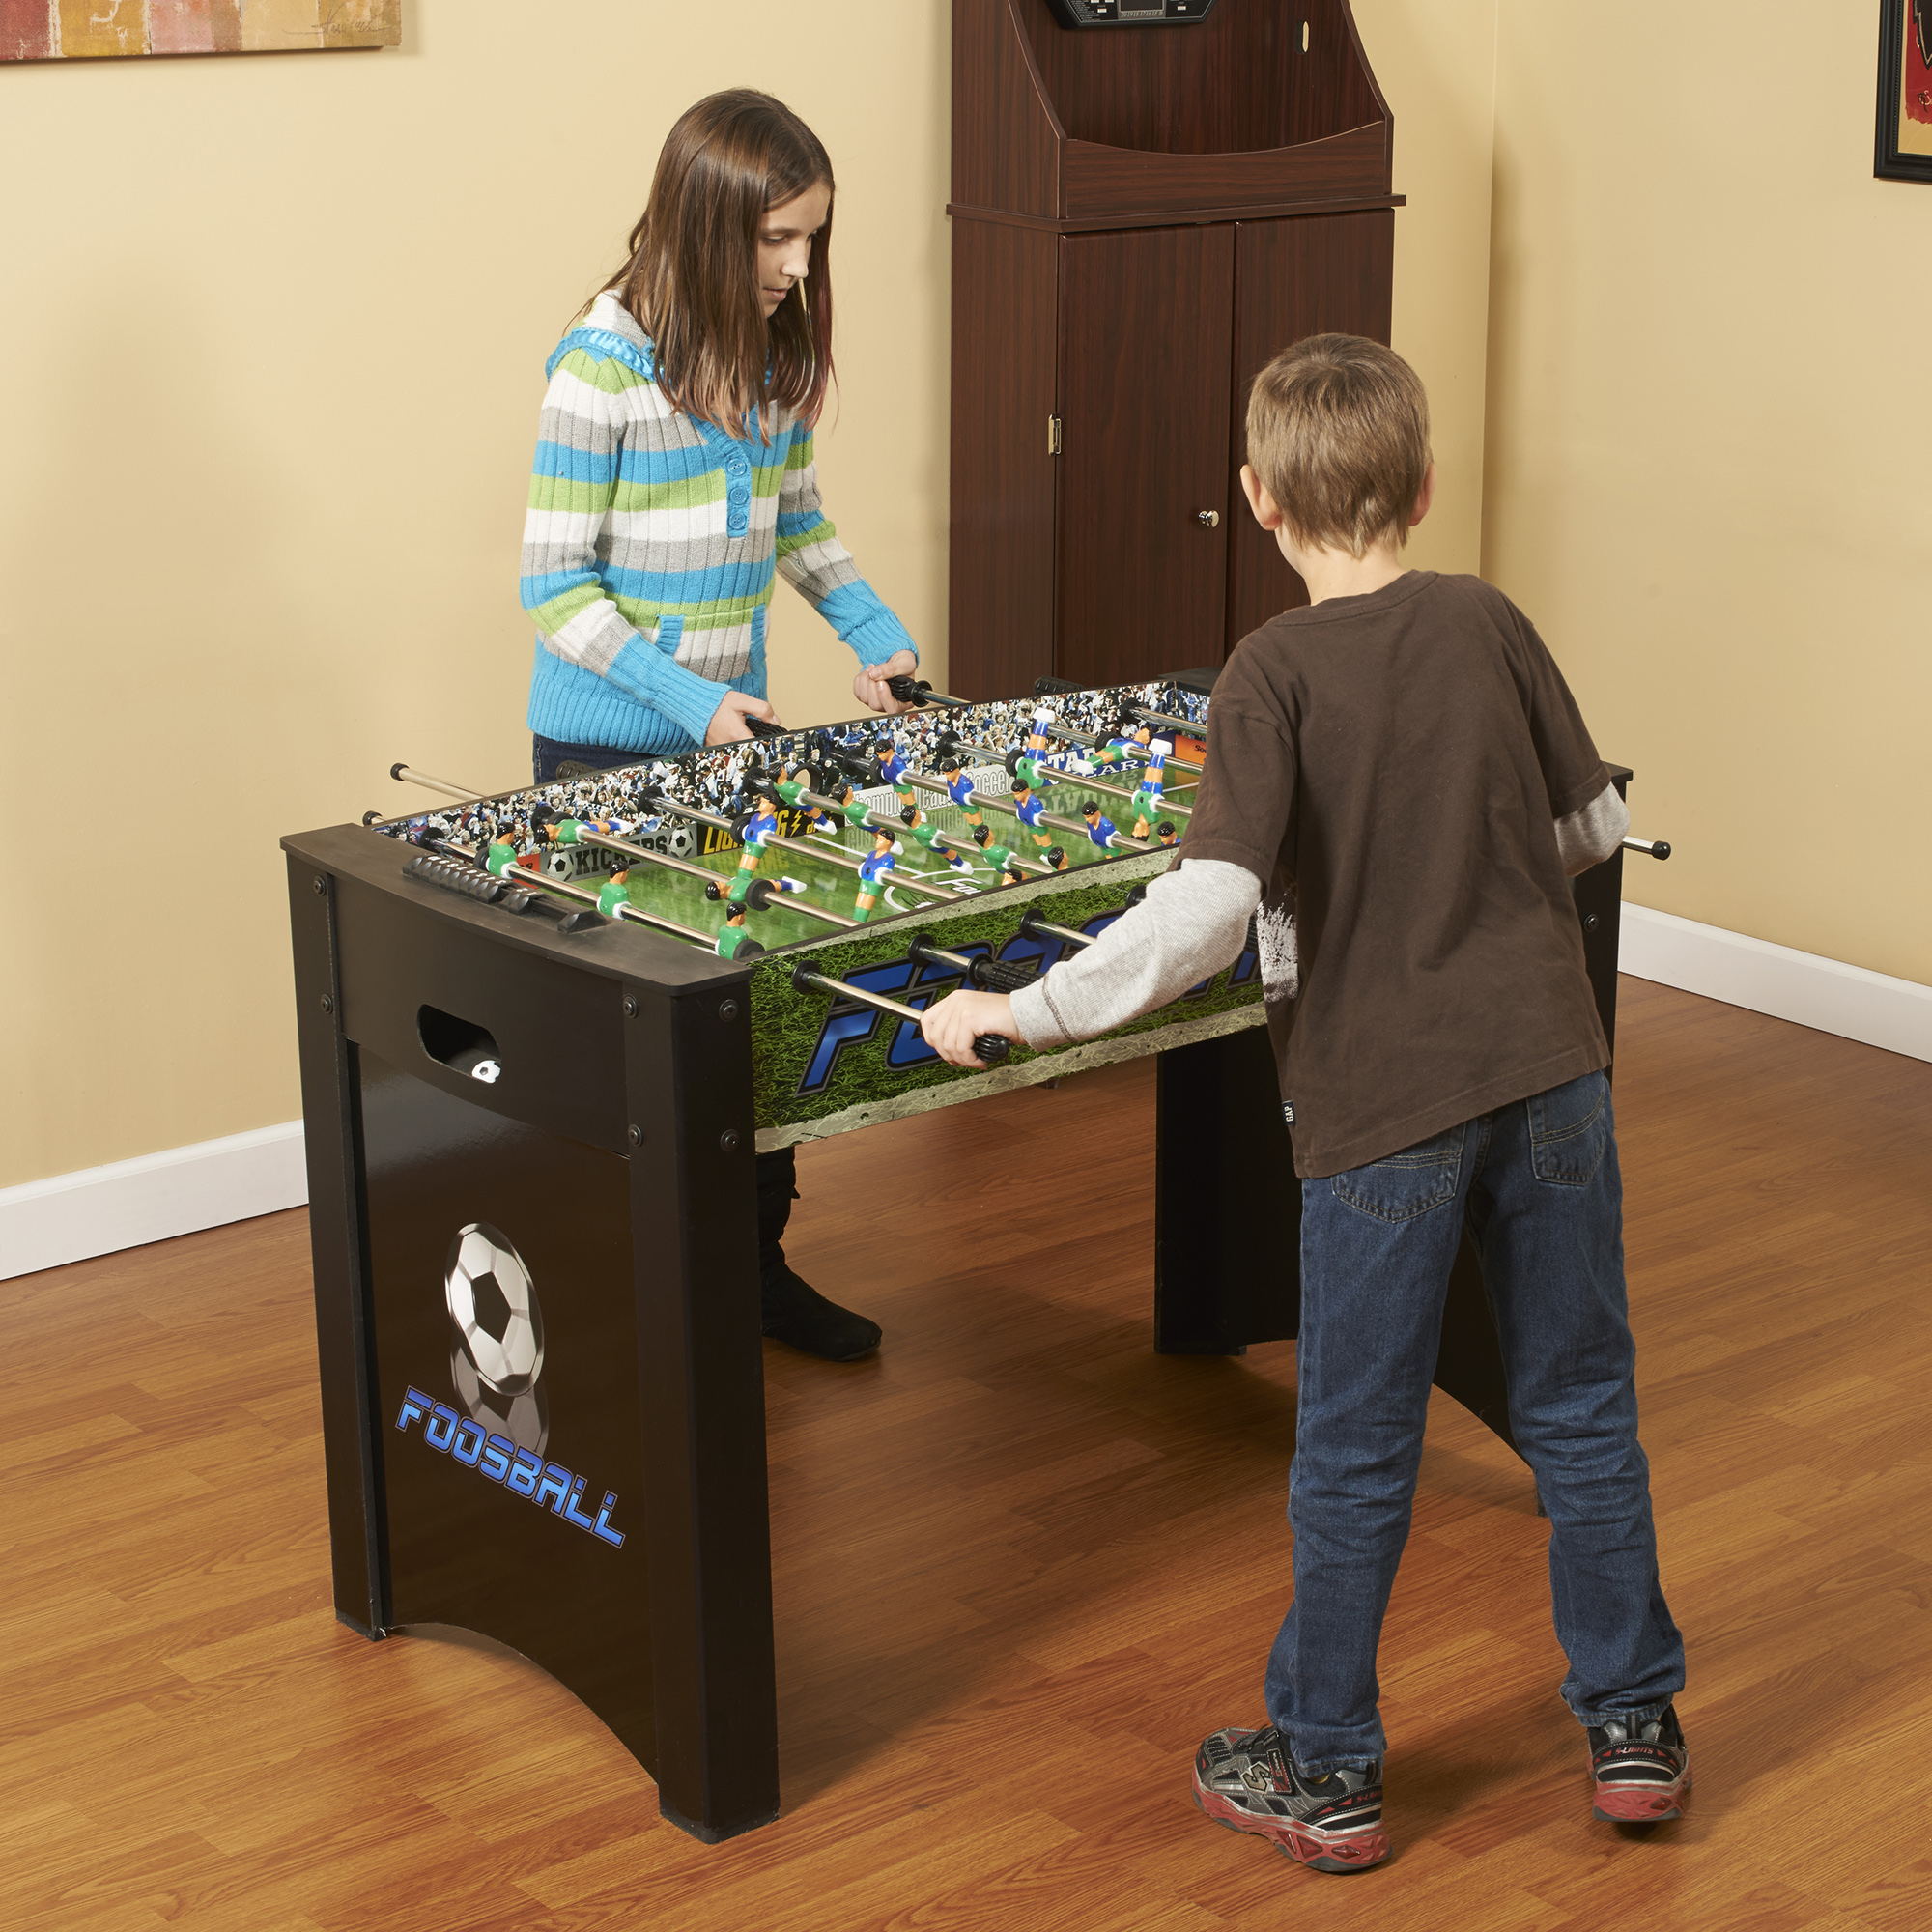 Hathaway Playoff 4-Foot Foosball Table, Soccer Game for Kids and Adults with Ergonomic Handles, Analog Scoring and Leg Levelers